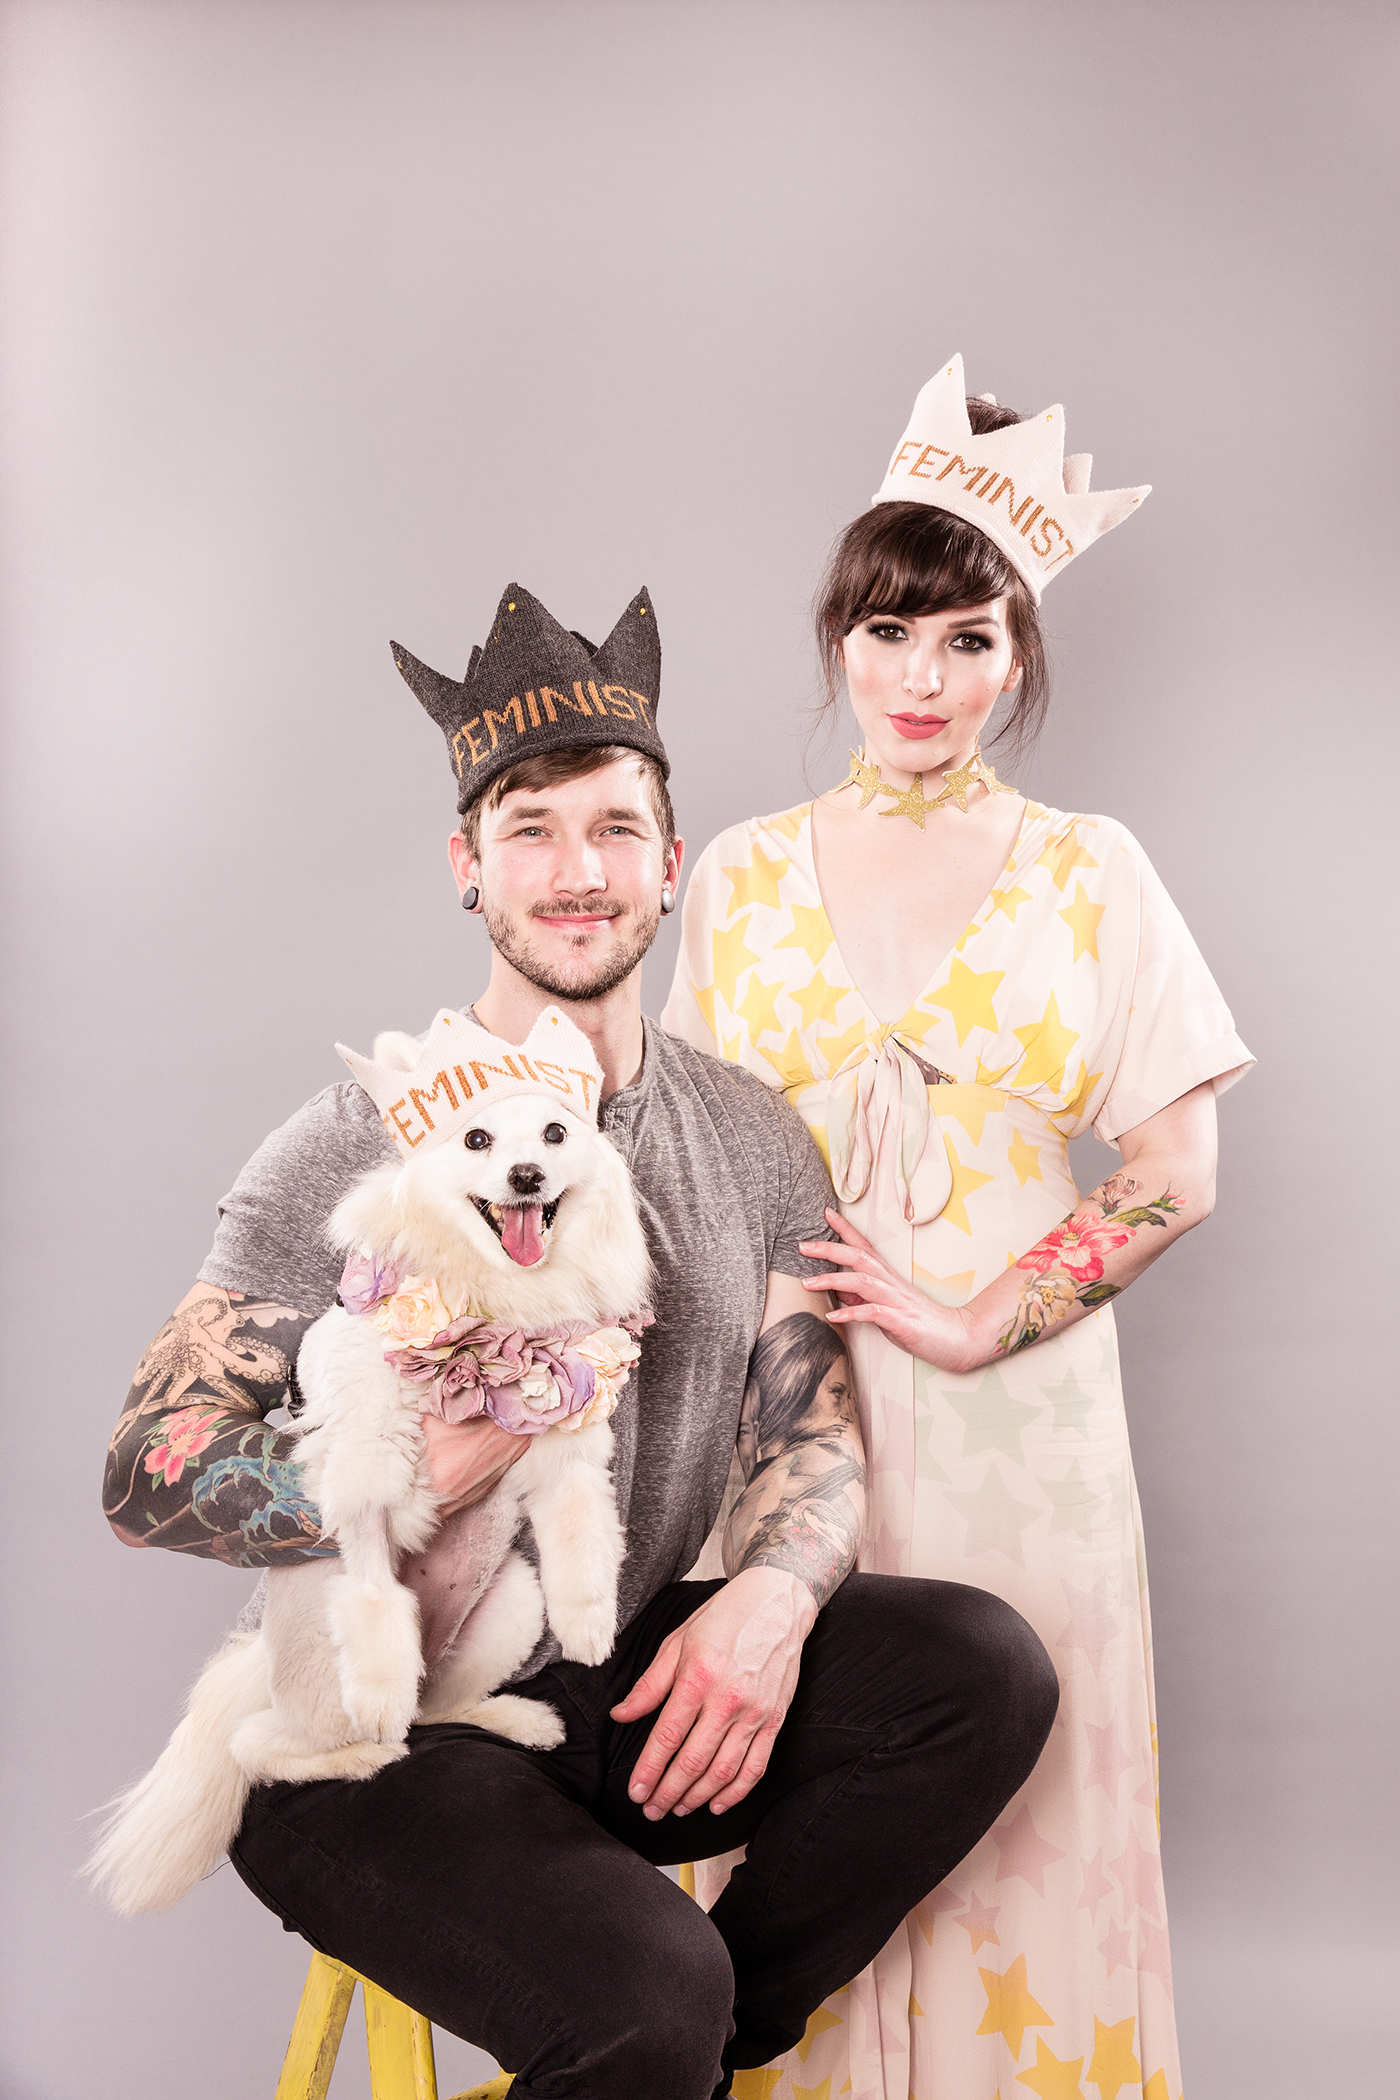 Oeuf Feminist Crown, Keiko Lynn, Bobby Hicks and Miku